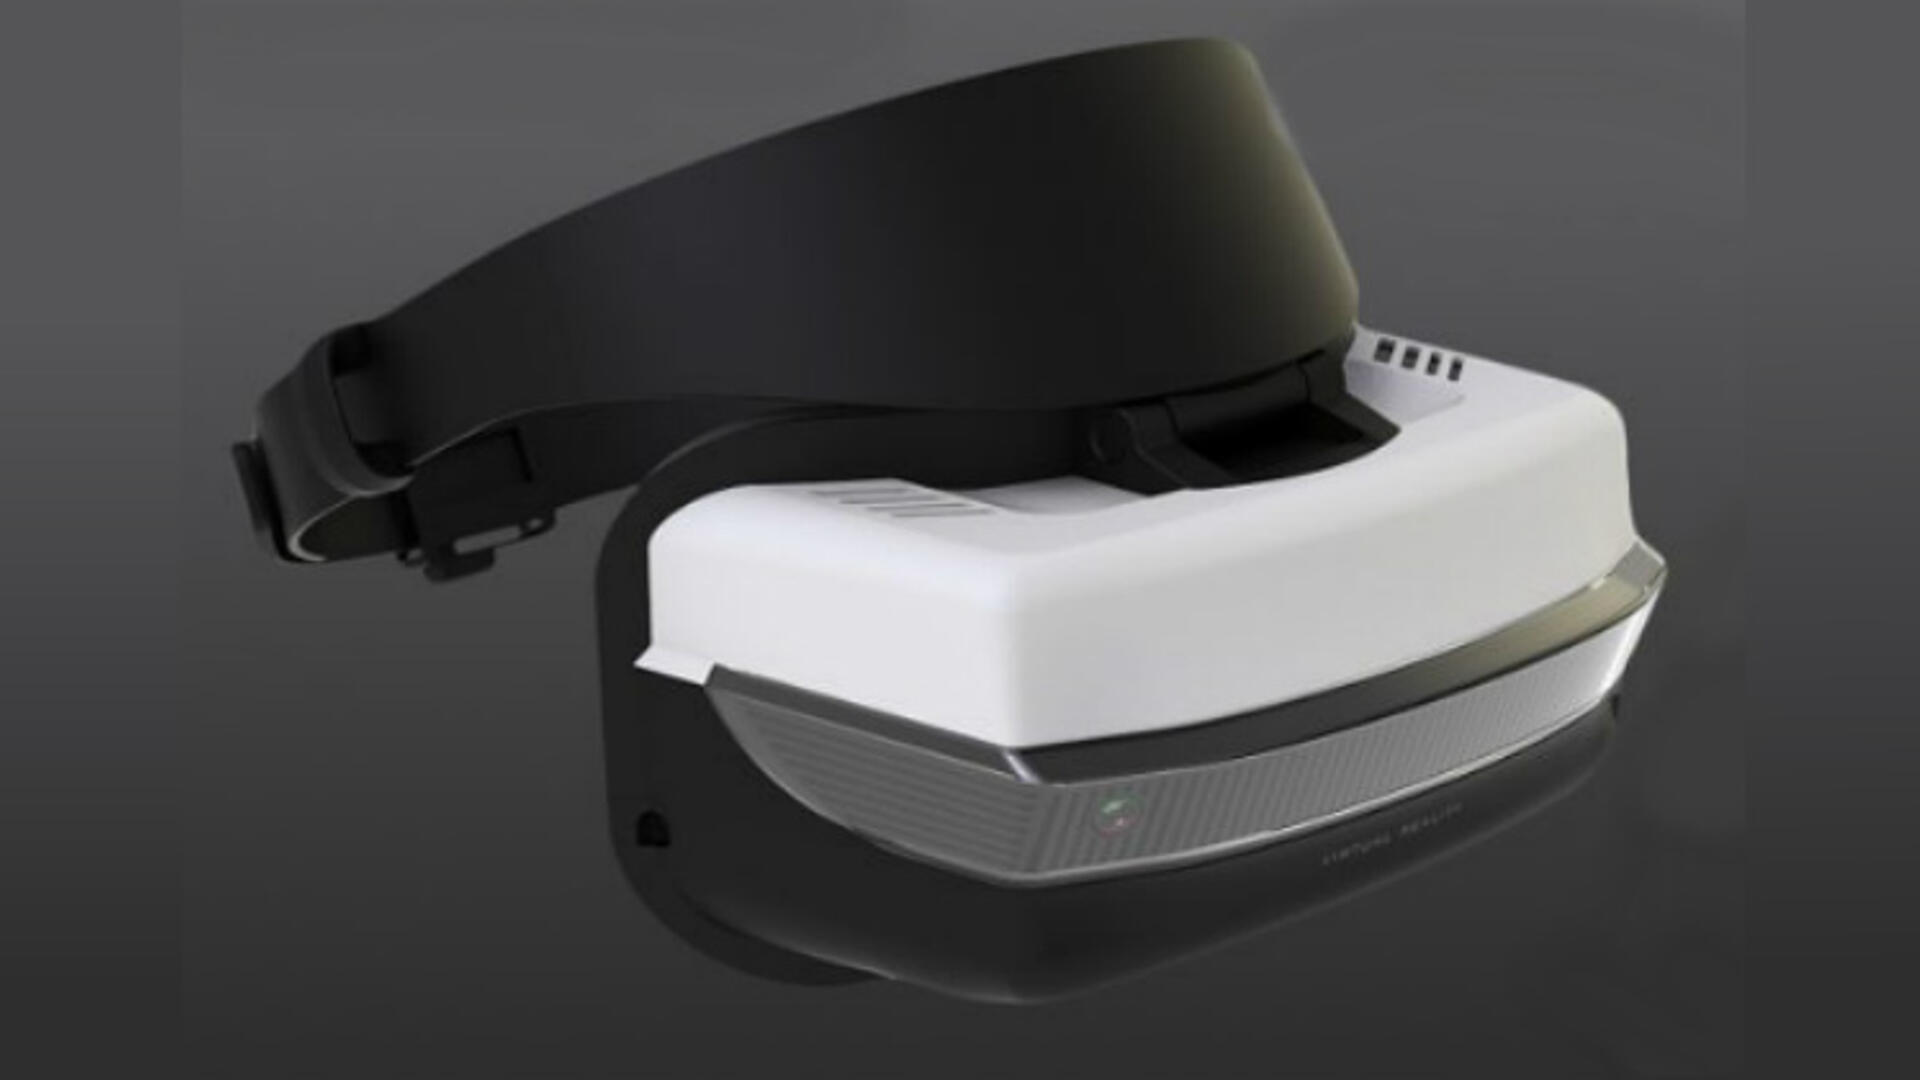 Microsoft Exploring VR Headsets With Partners, Starting at $299